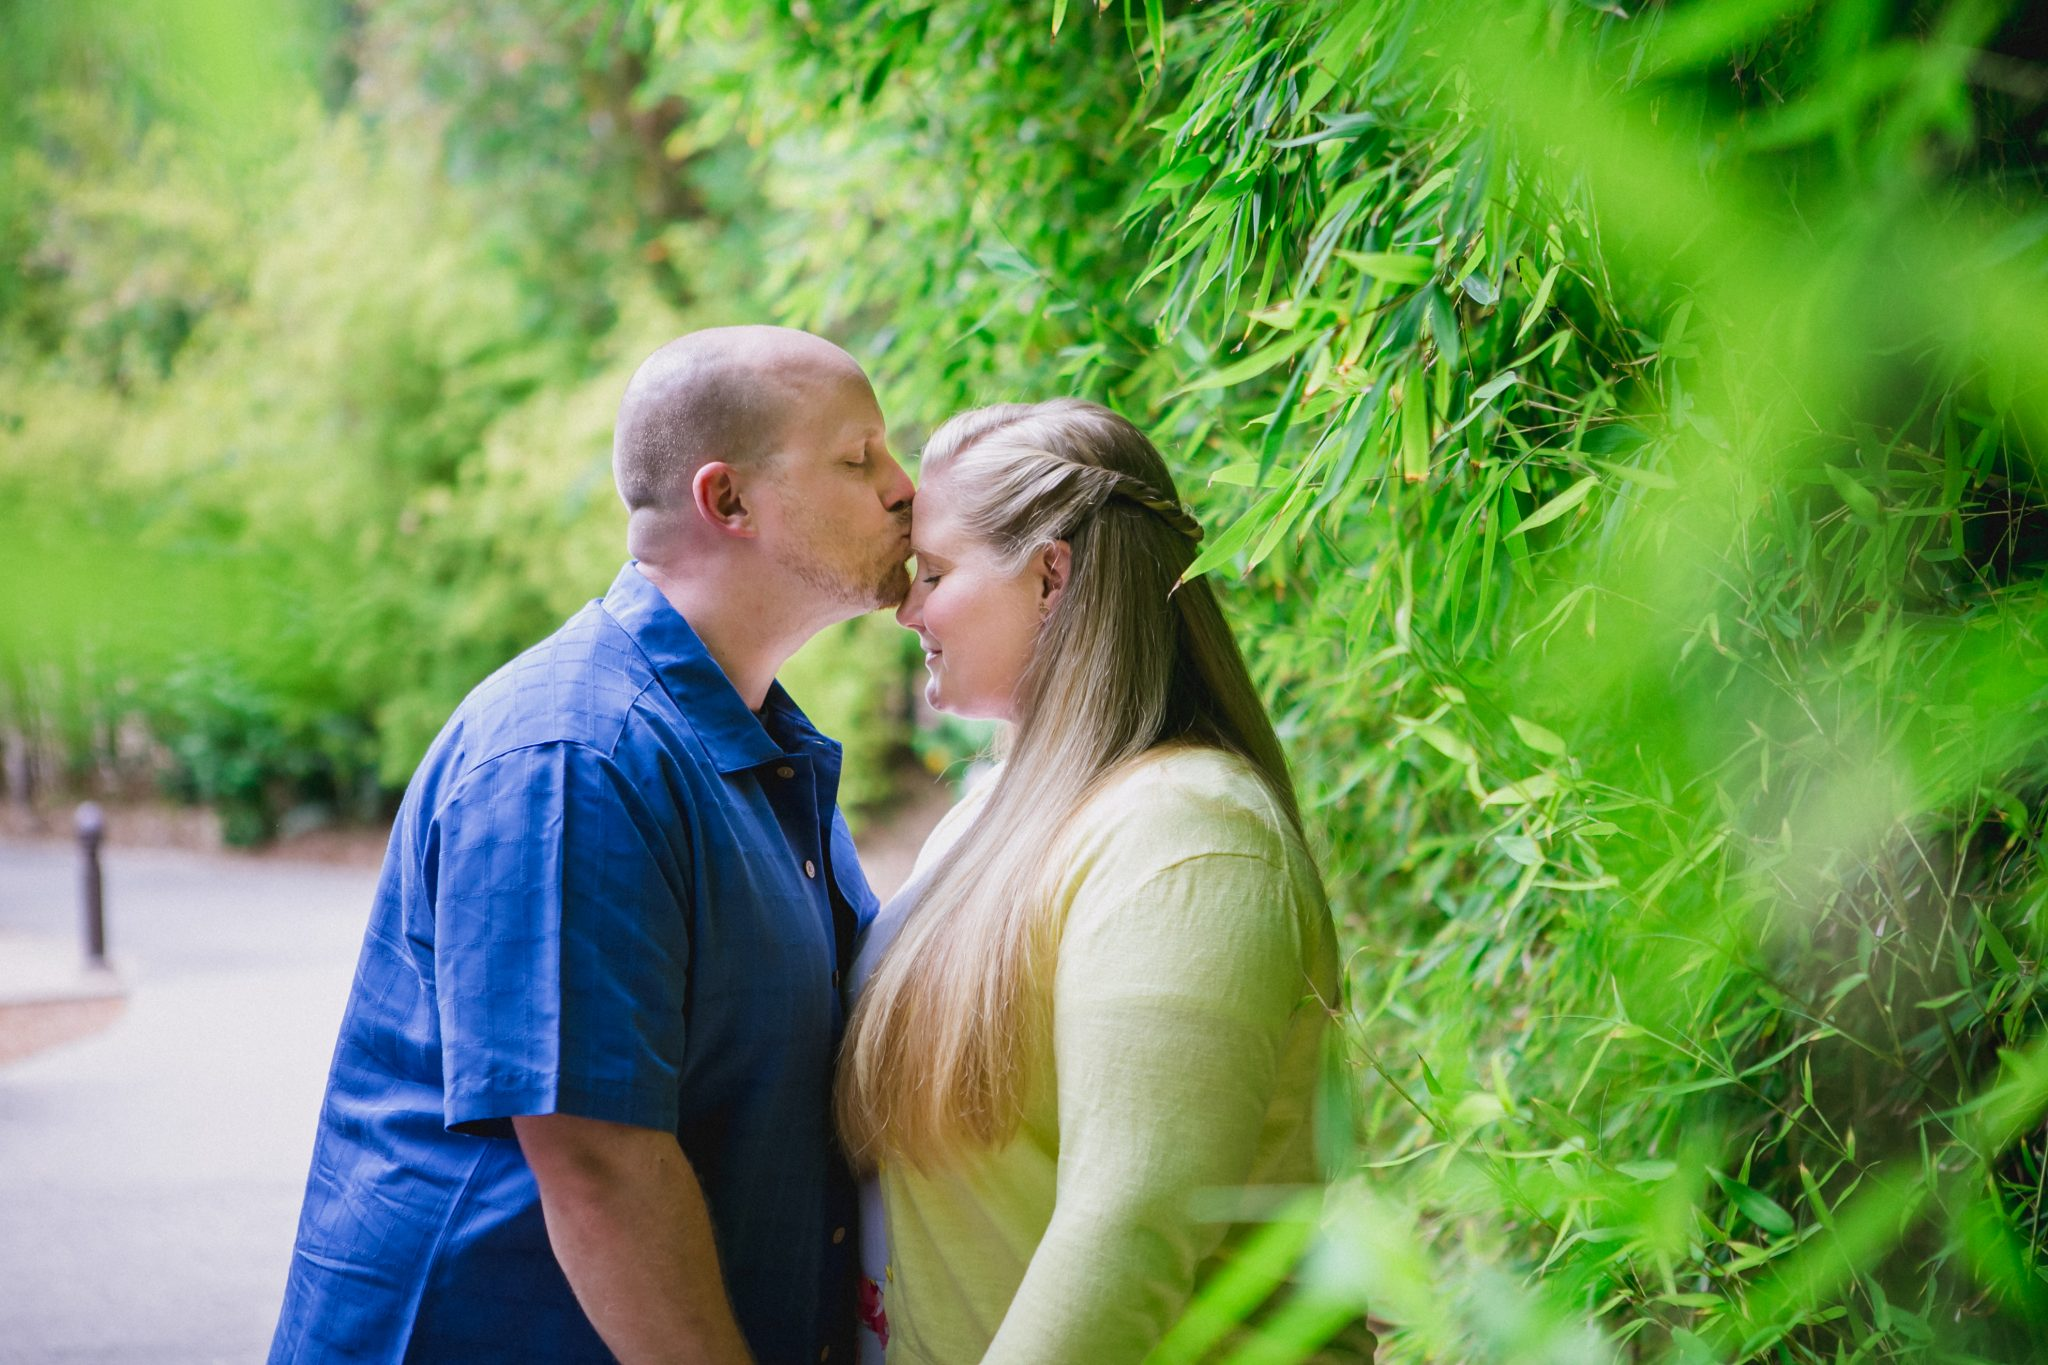 Groom kissing his bride-to-be surrounded by greenery